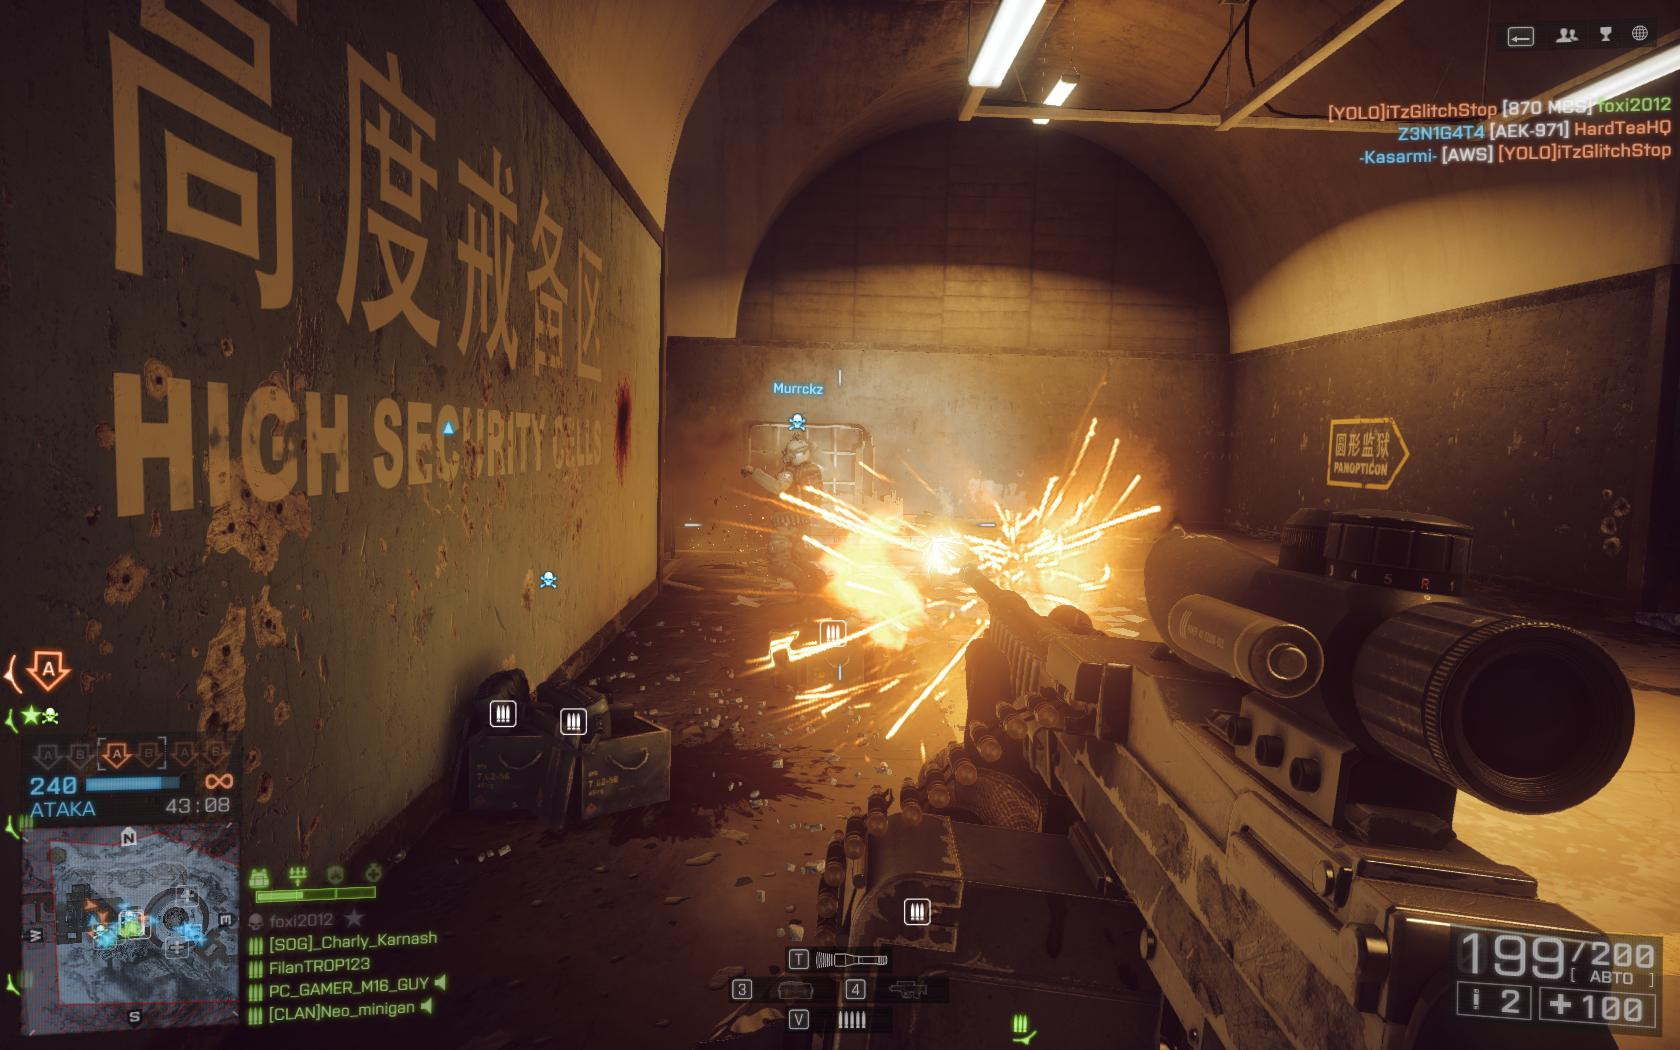 Img] titulo: battlefield 4 all dlc v10 region: usa id: blus31162.